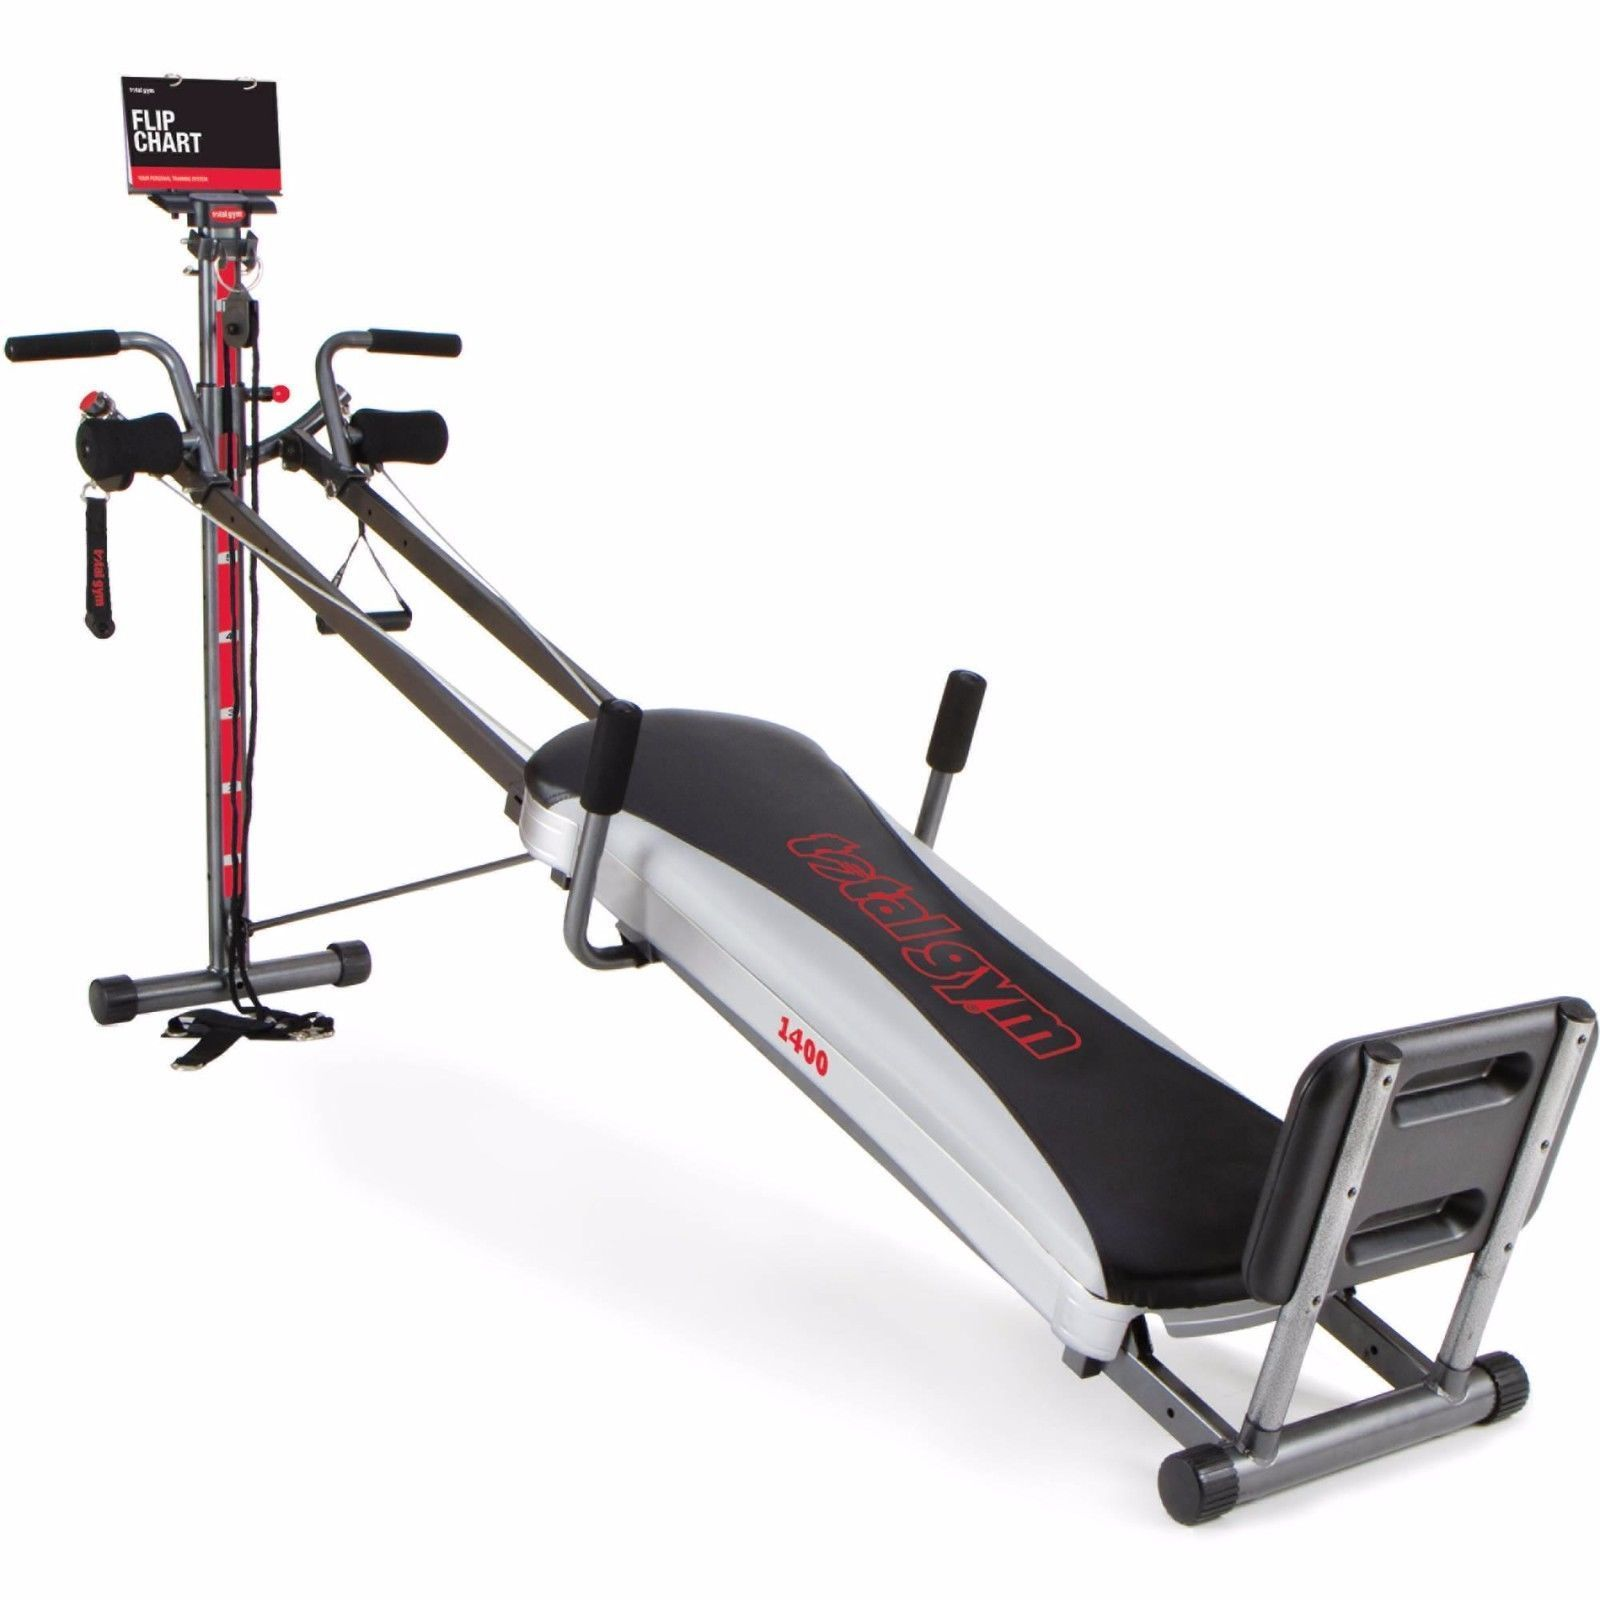 Home Exercise Equipment For Beginners: Total Gym 1400 Deluxe Home Exercise Machine